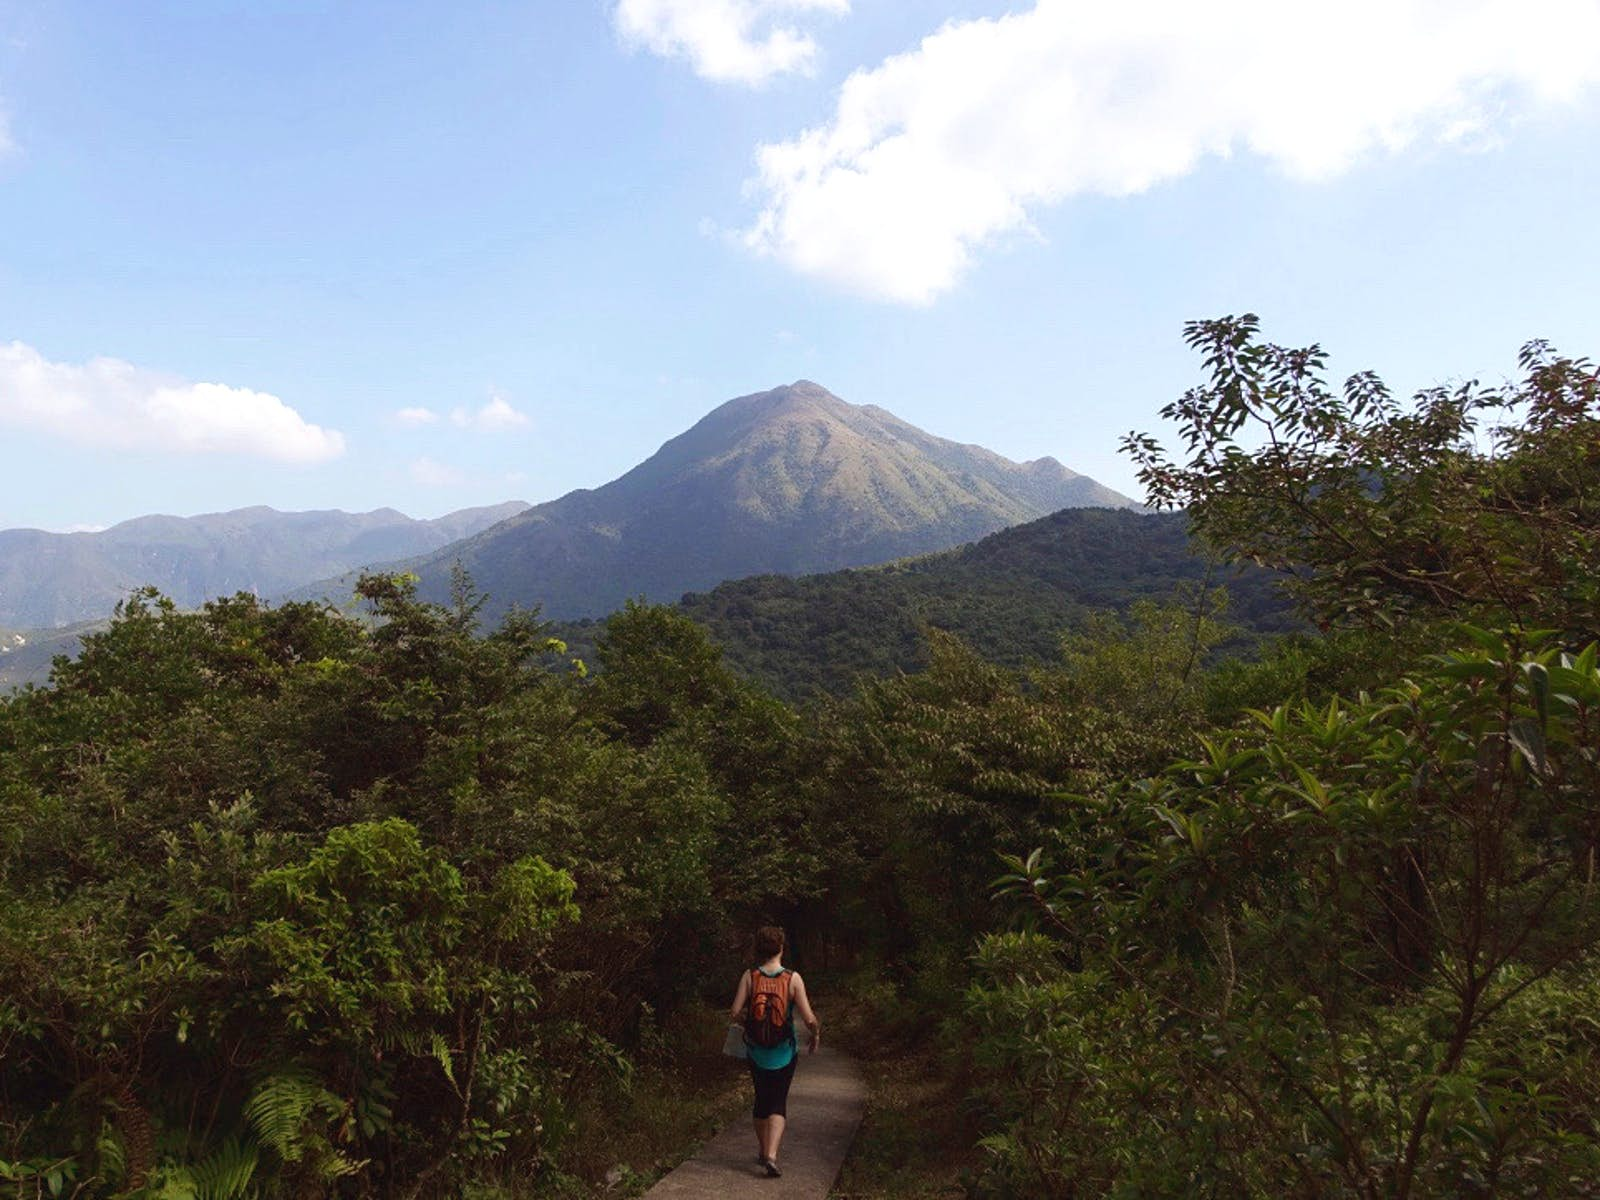 Hiking in the shadow of Lantau Peak is challenging and rewarding © Tess Humphrys / Lonely Planet